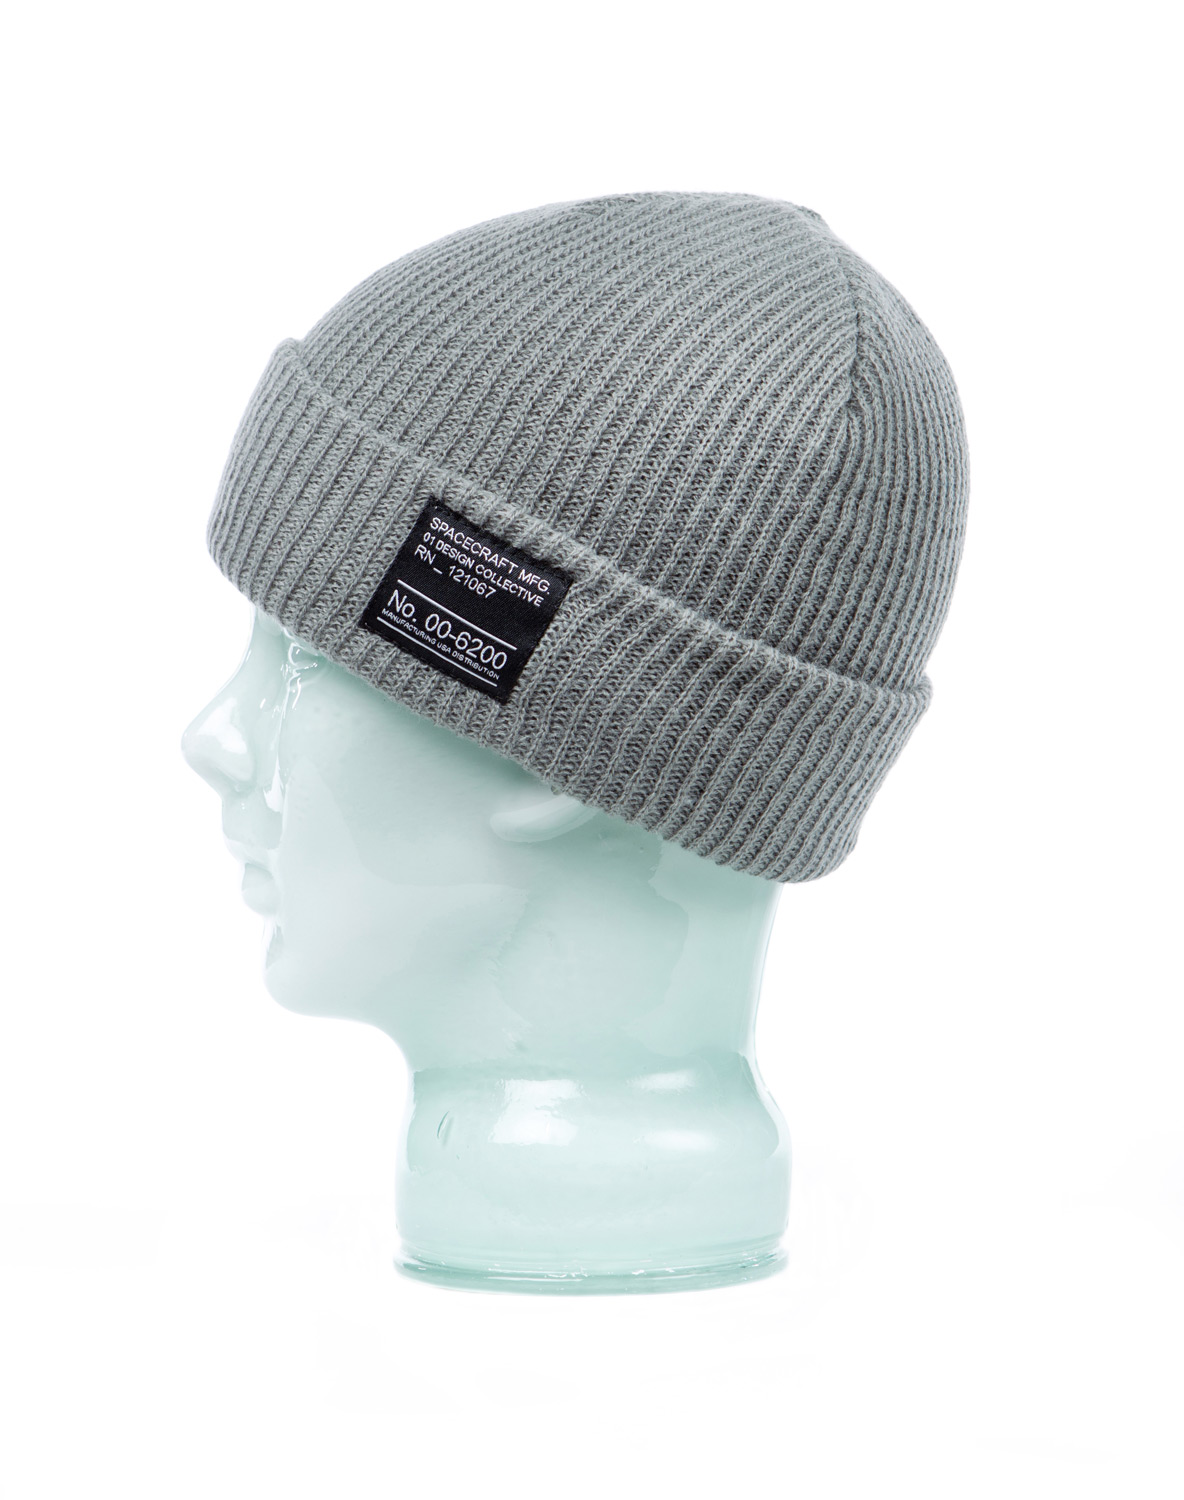 Key Features of the Spacecraft Dock Beanie: Standard Fit Light weight, Deconstructed knit beanie with double layer construction with custom patch on cuff Worn with a folded cuff. Material: Acrylic - $11.95